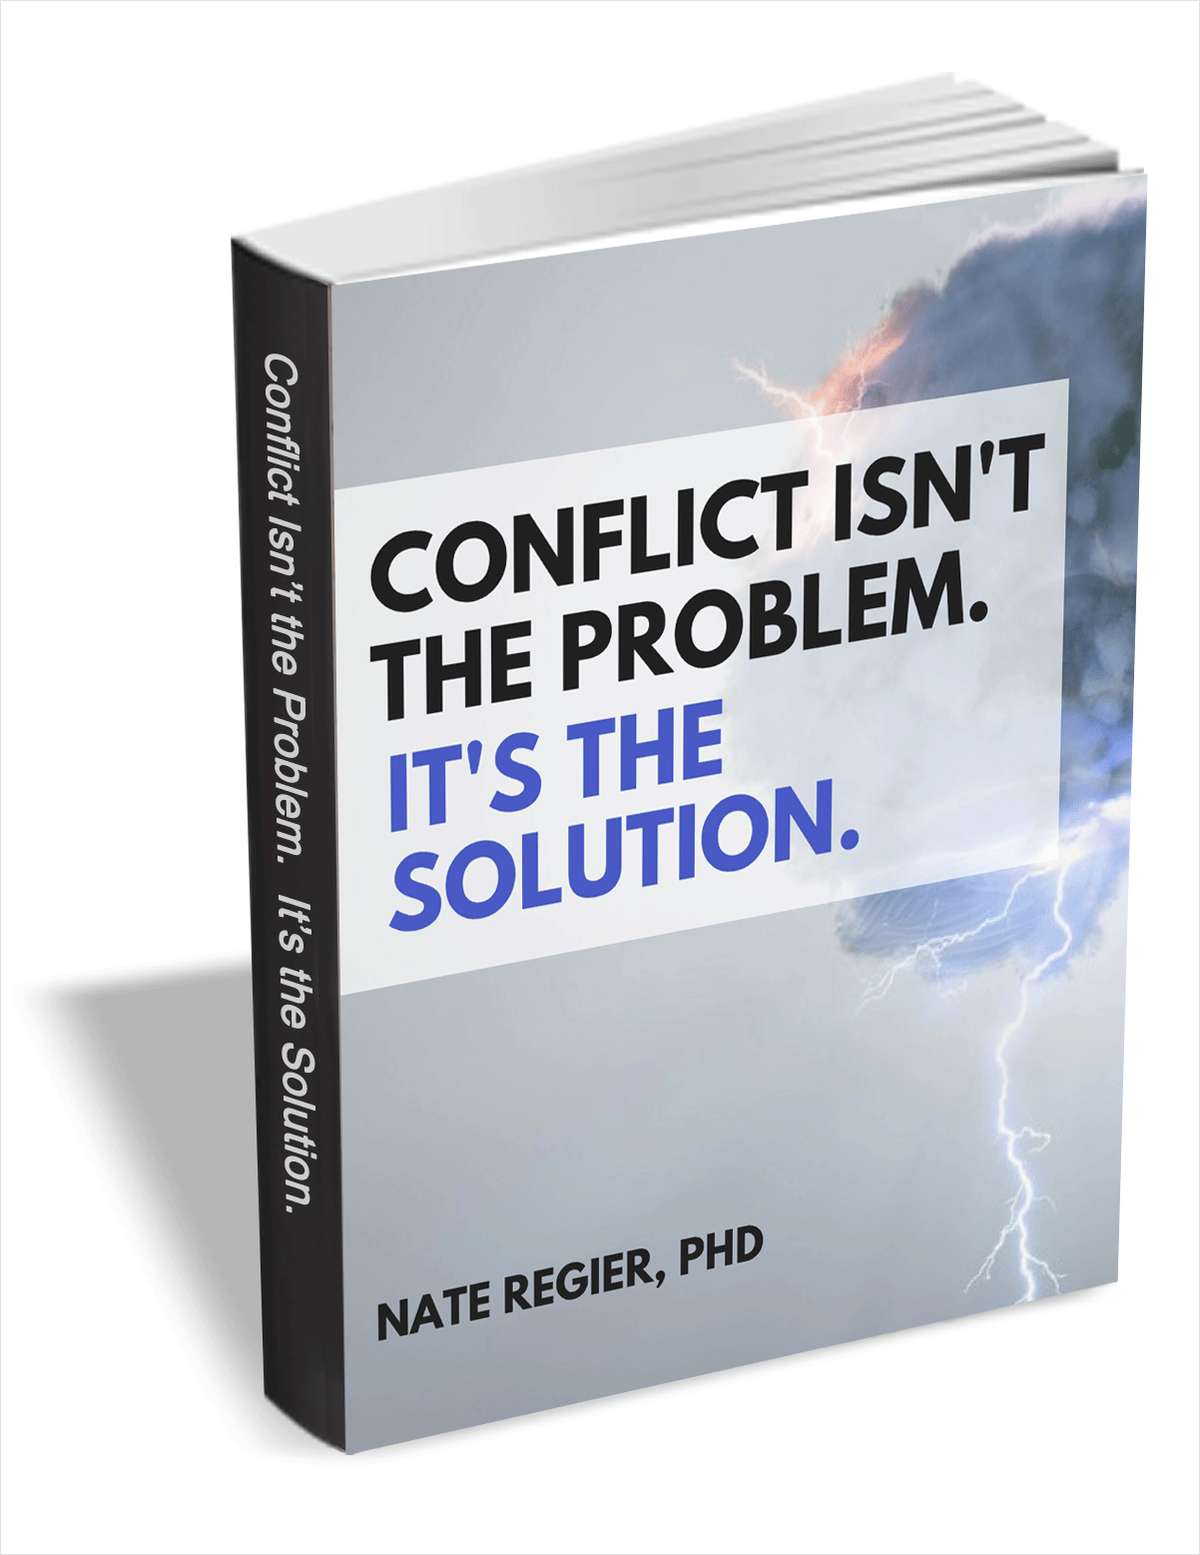 Conflict Isn't The Problem. It's The Solution.